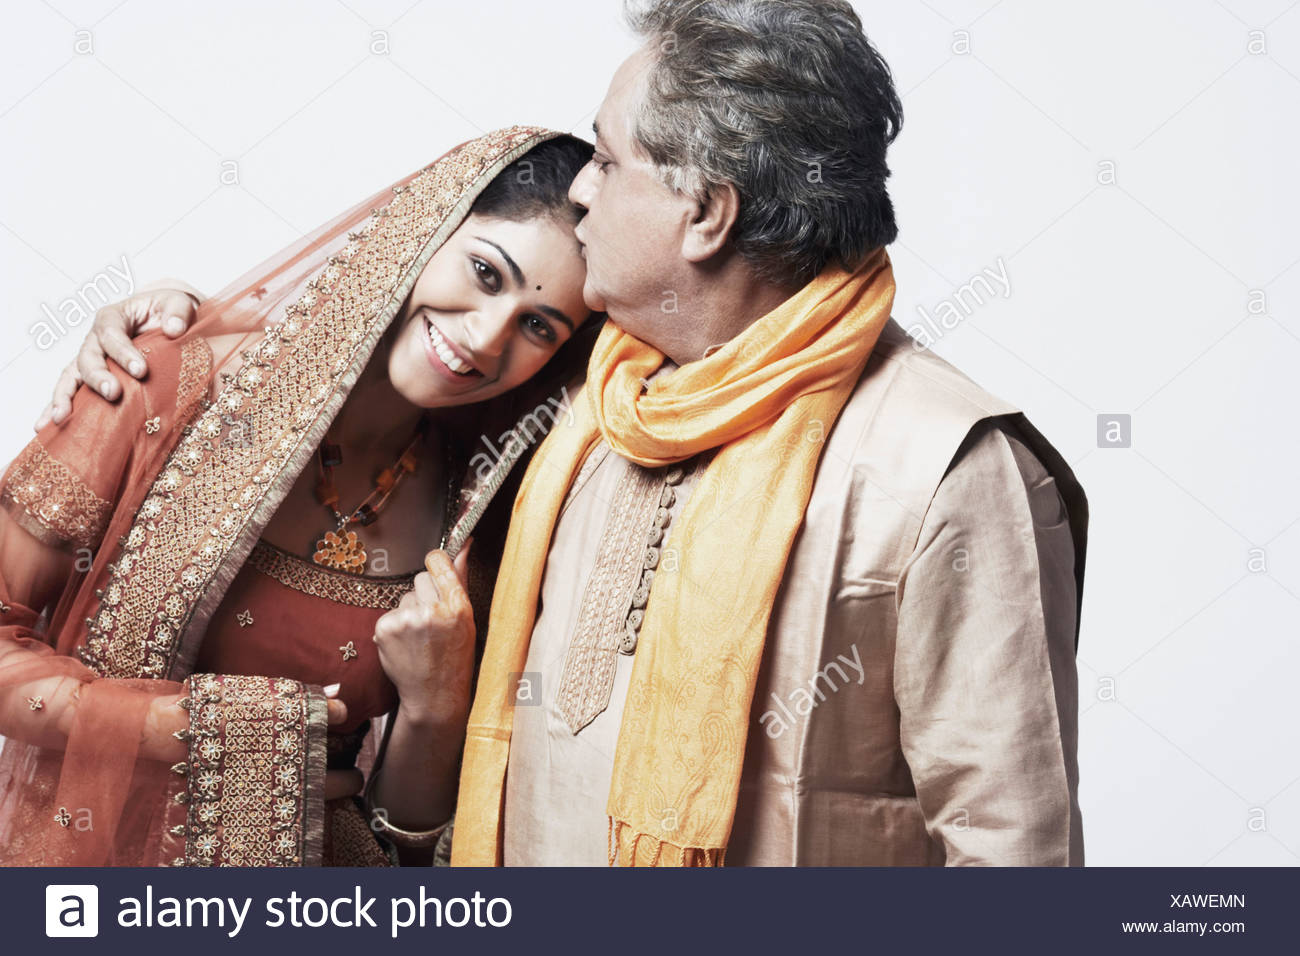 Indian Father Daughter Wedding High Resolution Stock Photography And Images Alamy